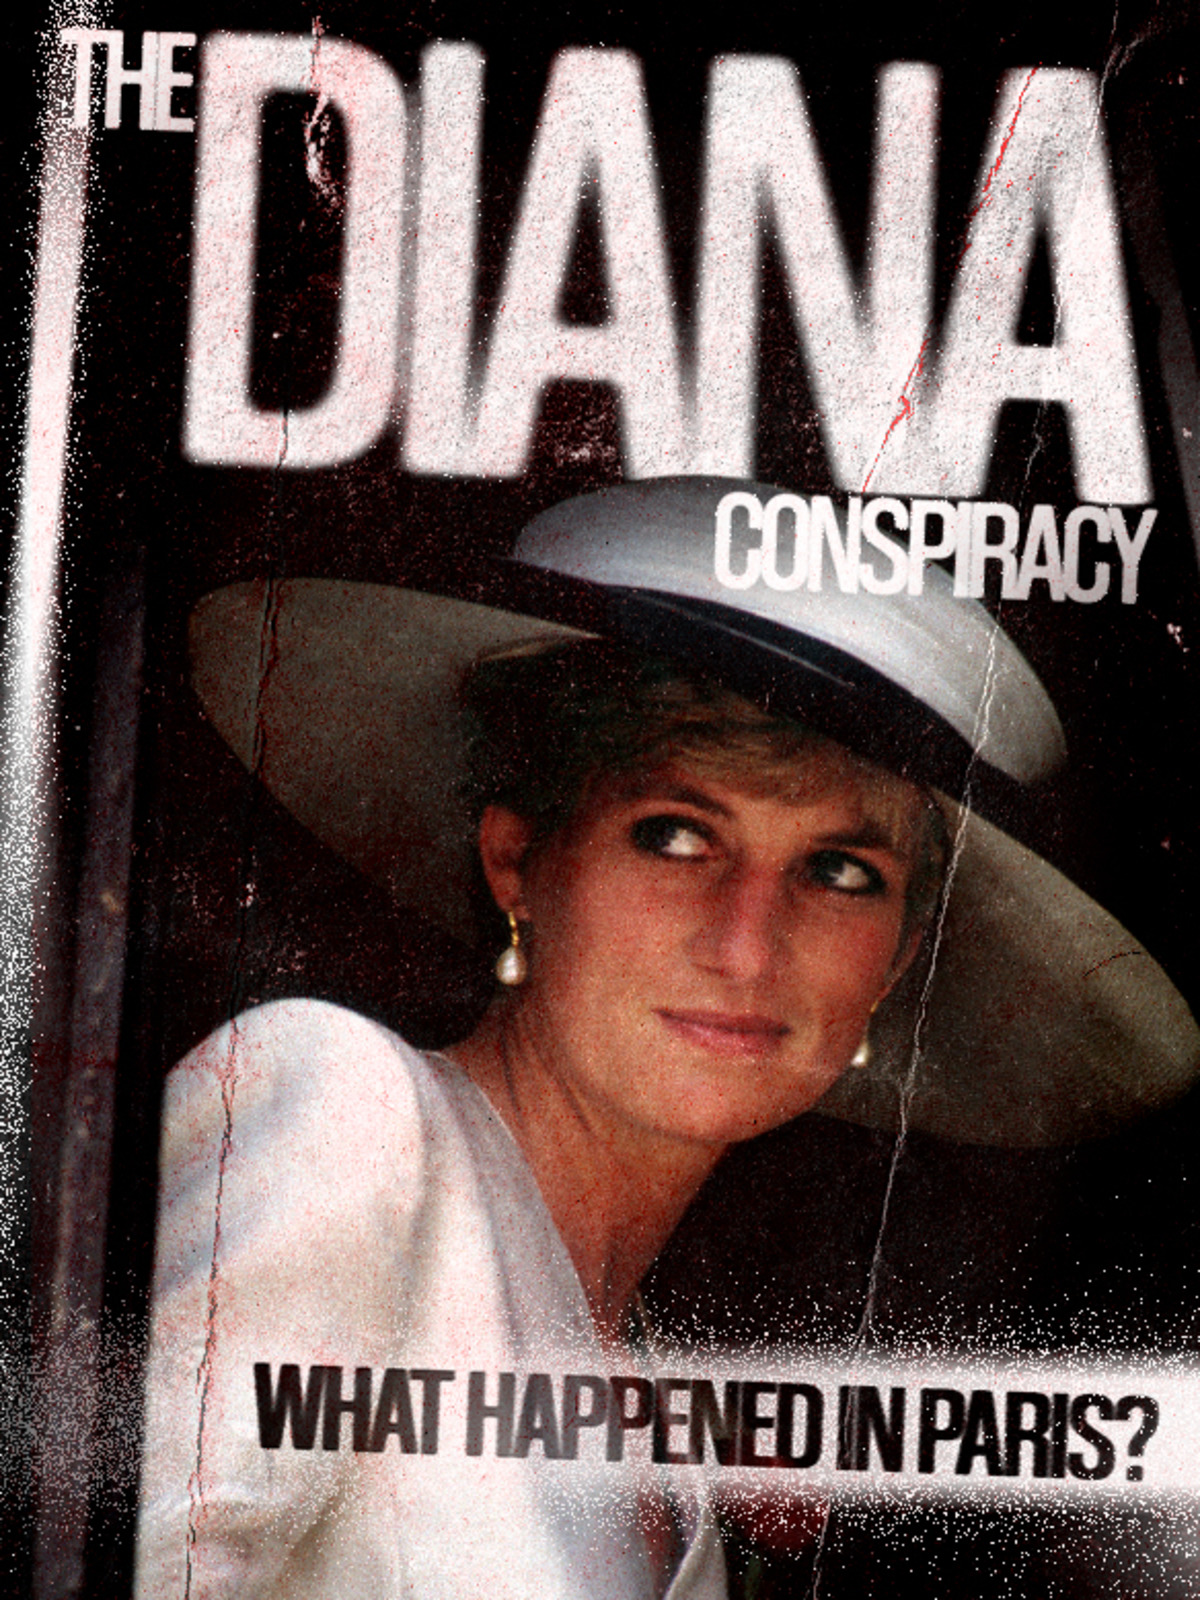 The Diana Conspiracy: What Happened in Paris?